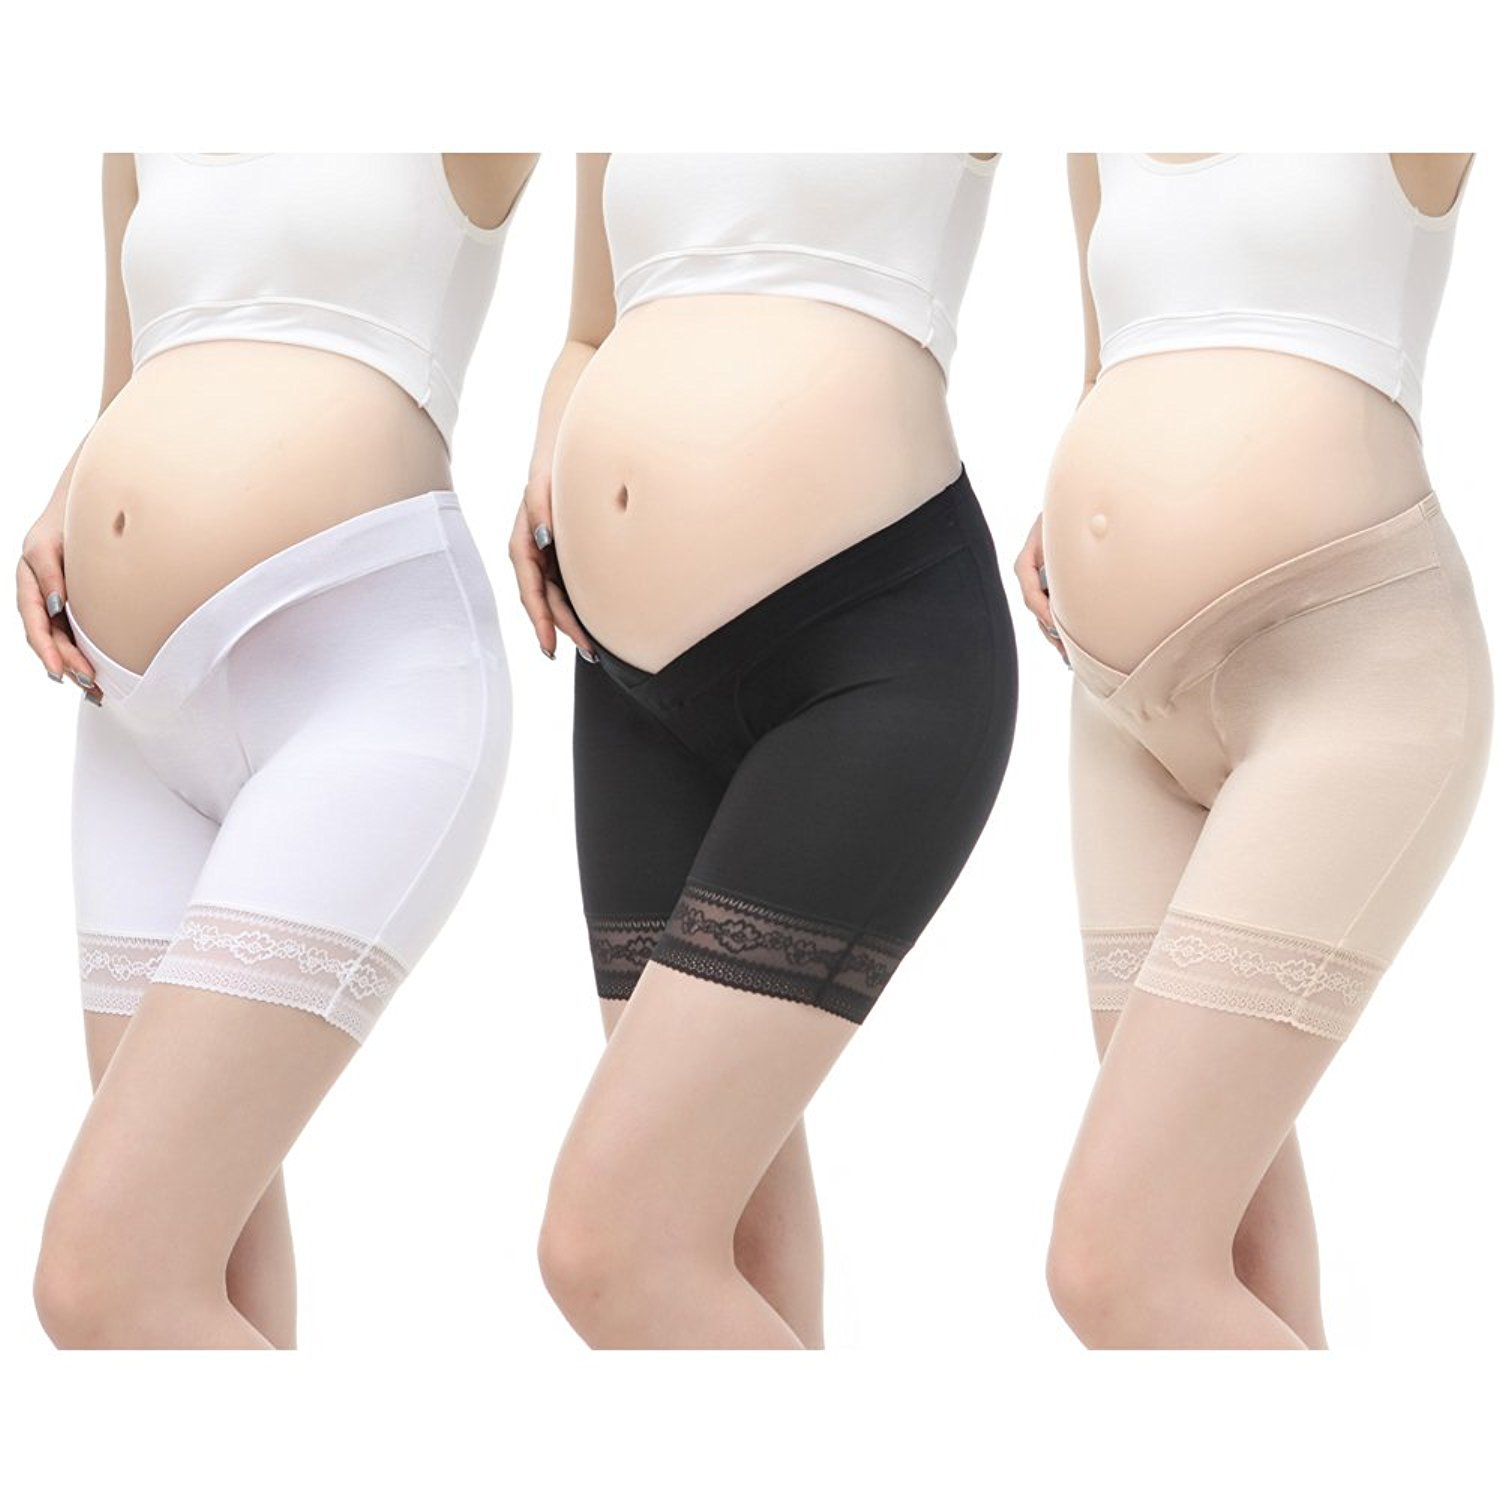 VIGOO 3PCS Cotton Maternity Pregnant Mother Panties Lingerie Briefs Underpants Underwear (Label XXL/US XL, 3 Pack(Black/Beige/White))